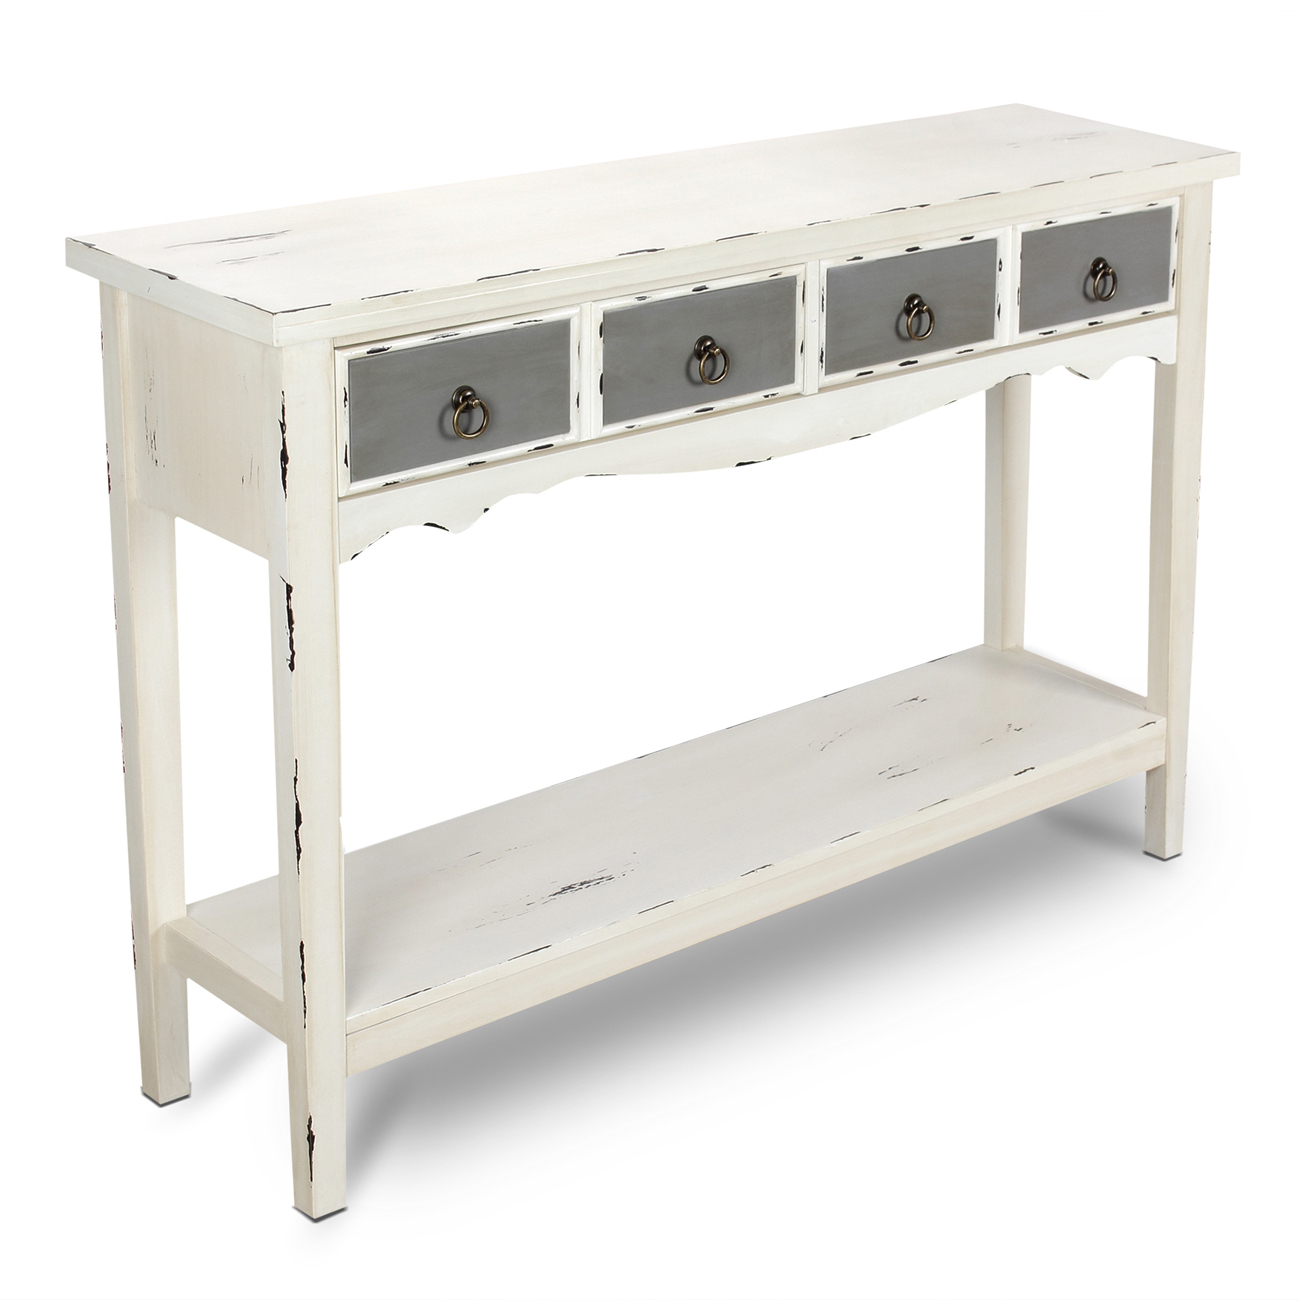 Modern Two Tone - Two Drawer Distressed Console Entryway Table regarding Antique White Distressed Console Tables (Image 20 of 30)